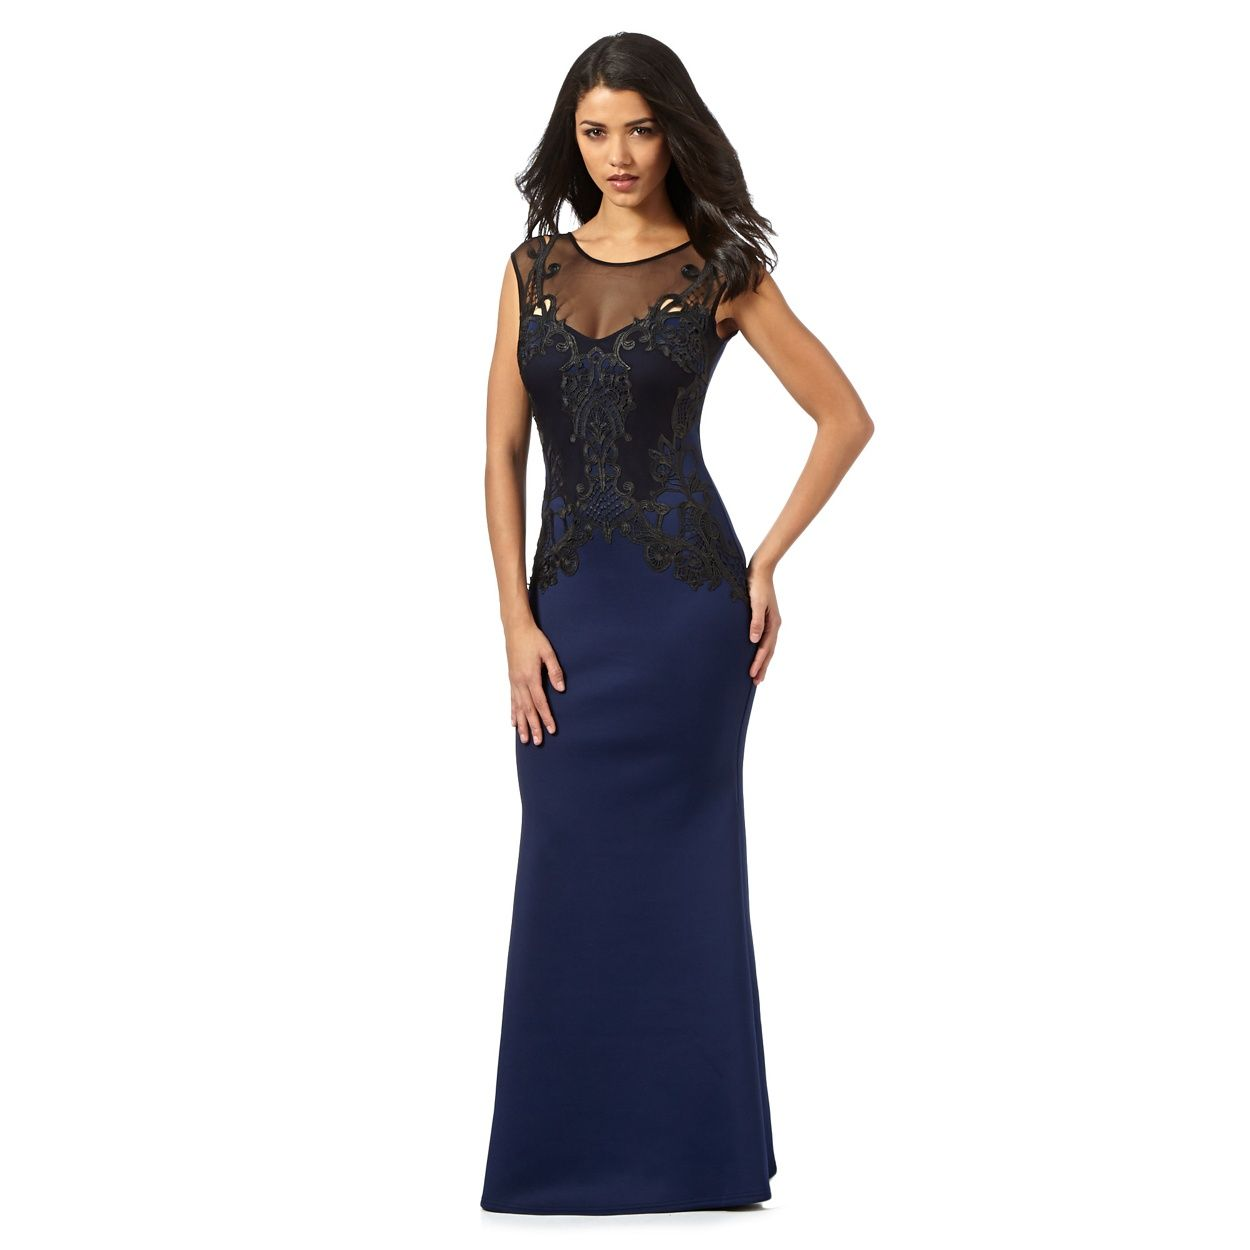 Lipsy navy lace maxi dress at wedding for Navy maxi dresses for weddings